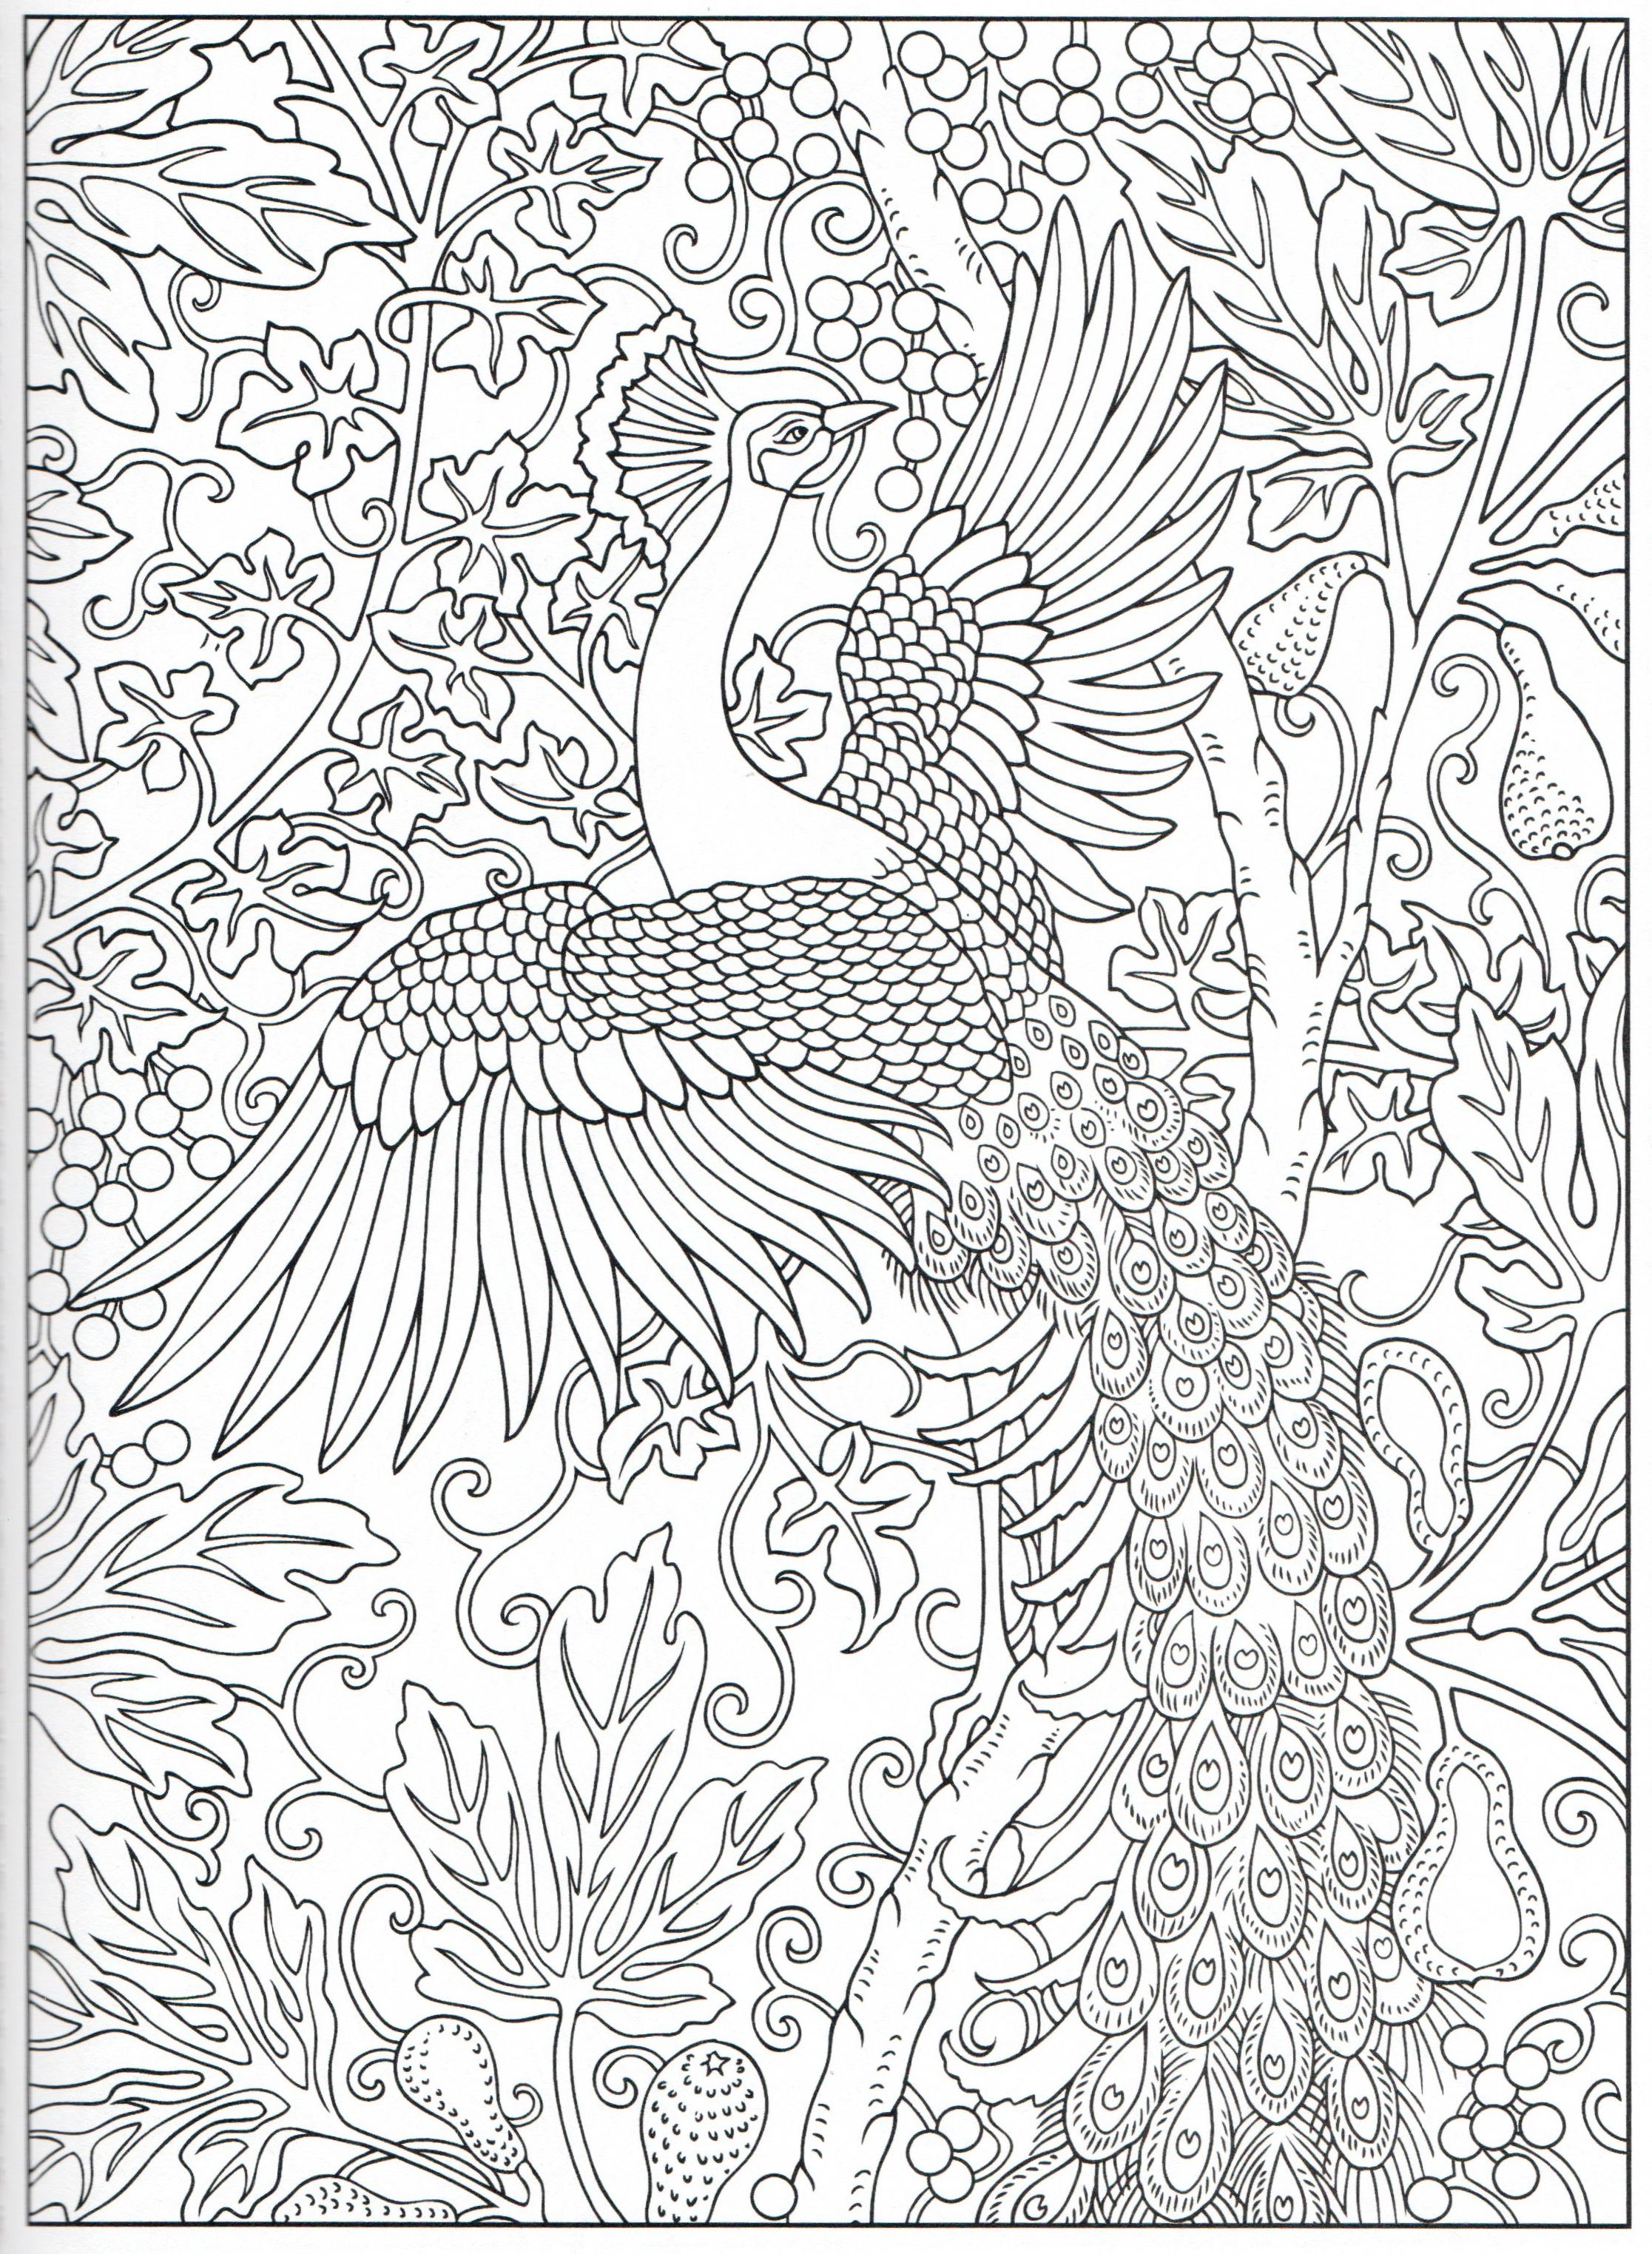 Peacock coloring page 1531 Color